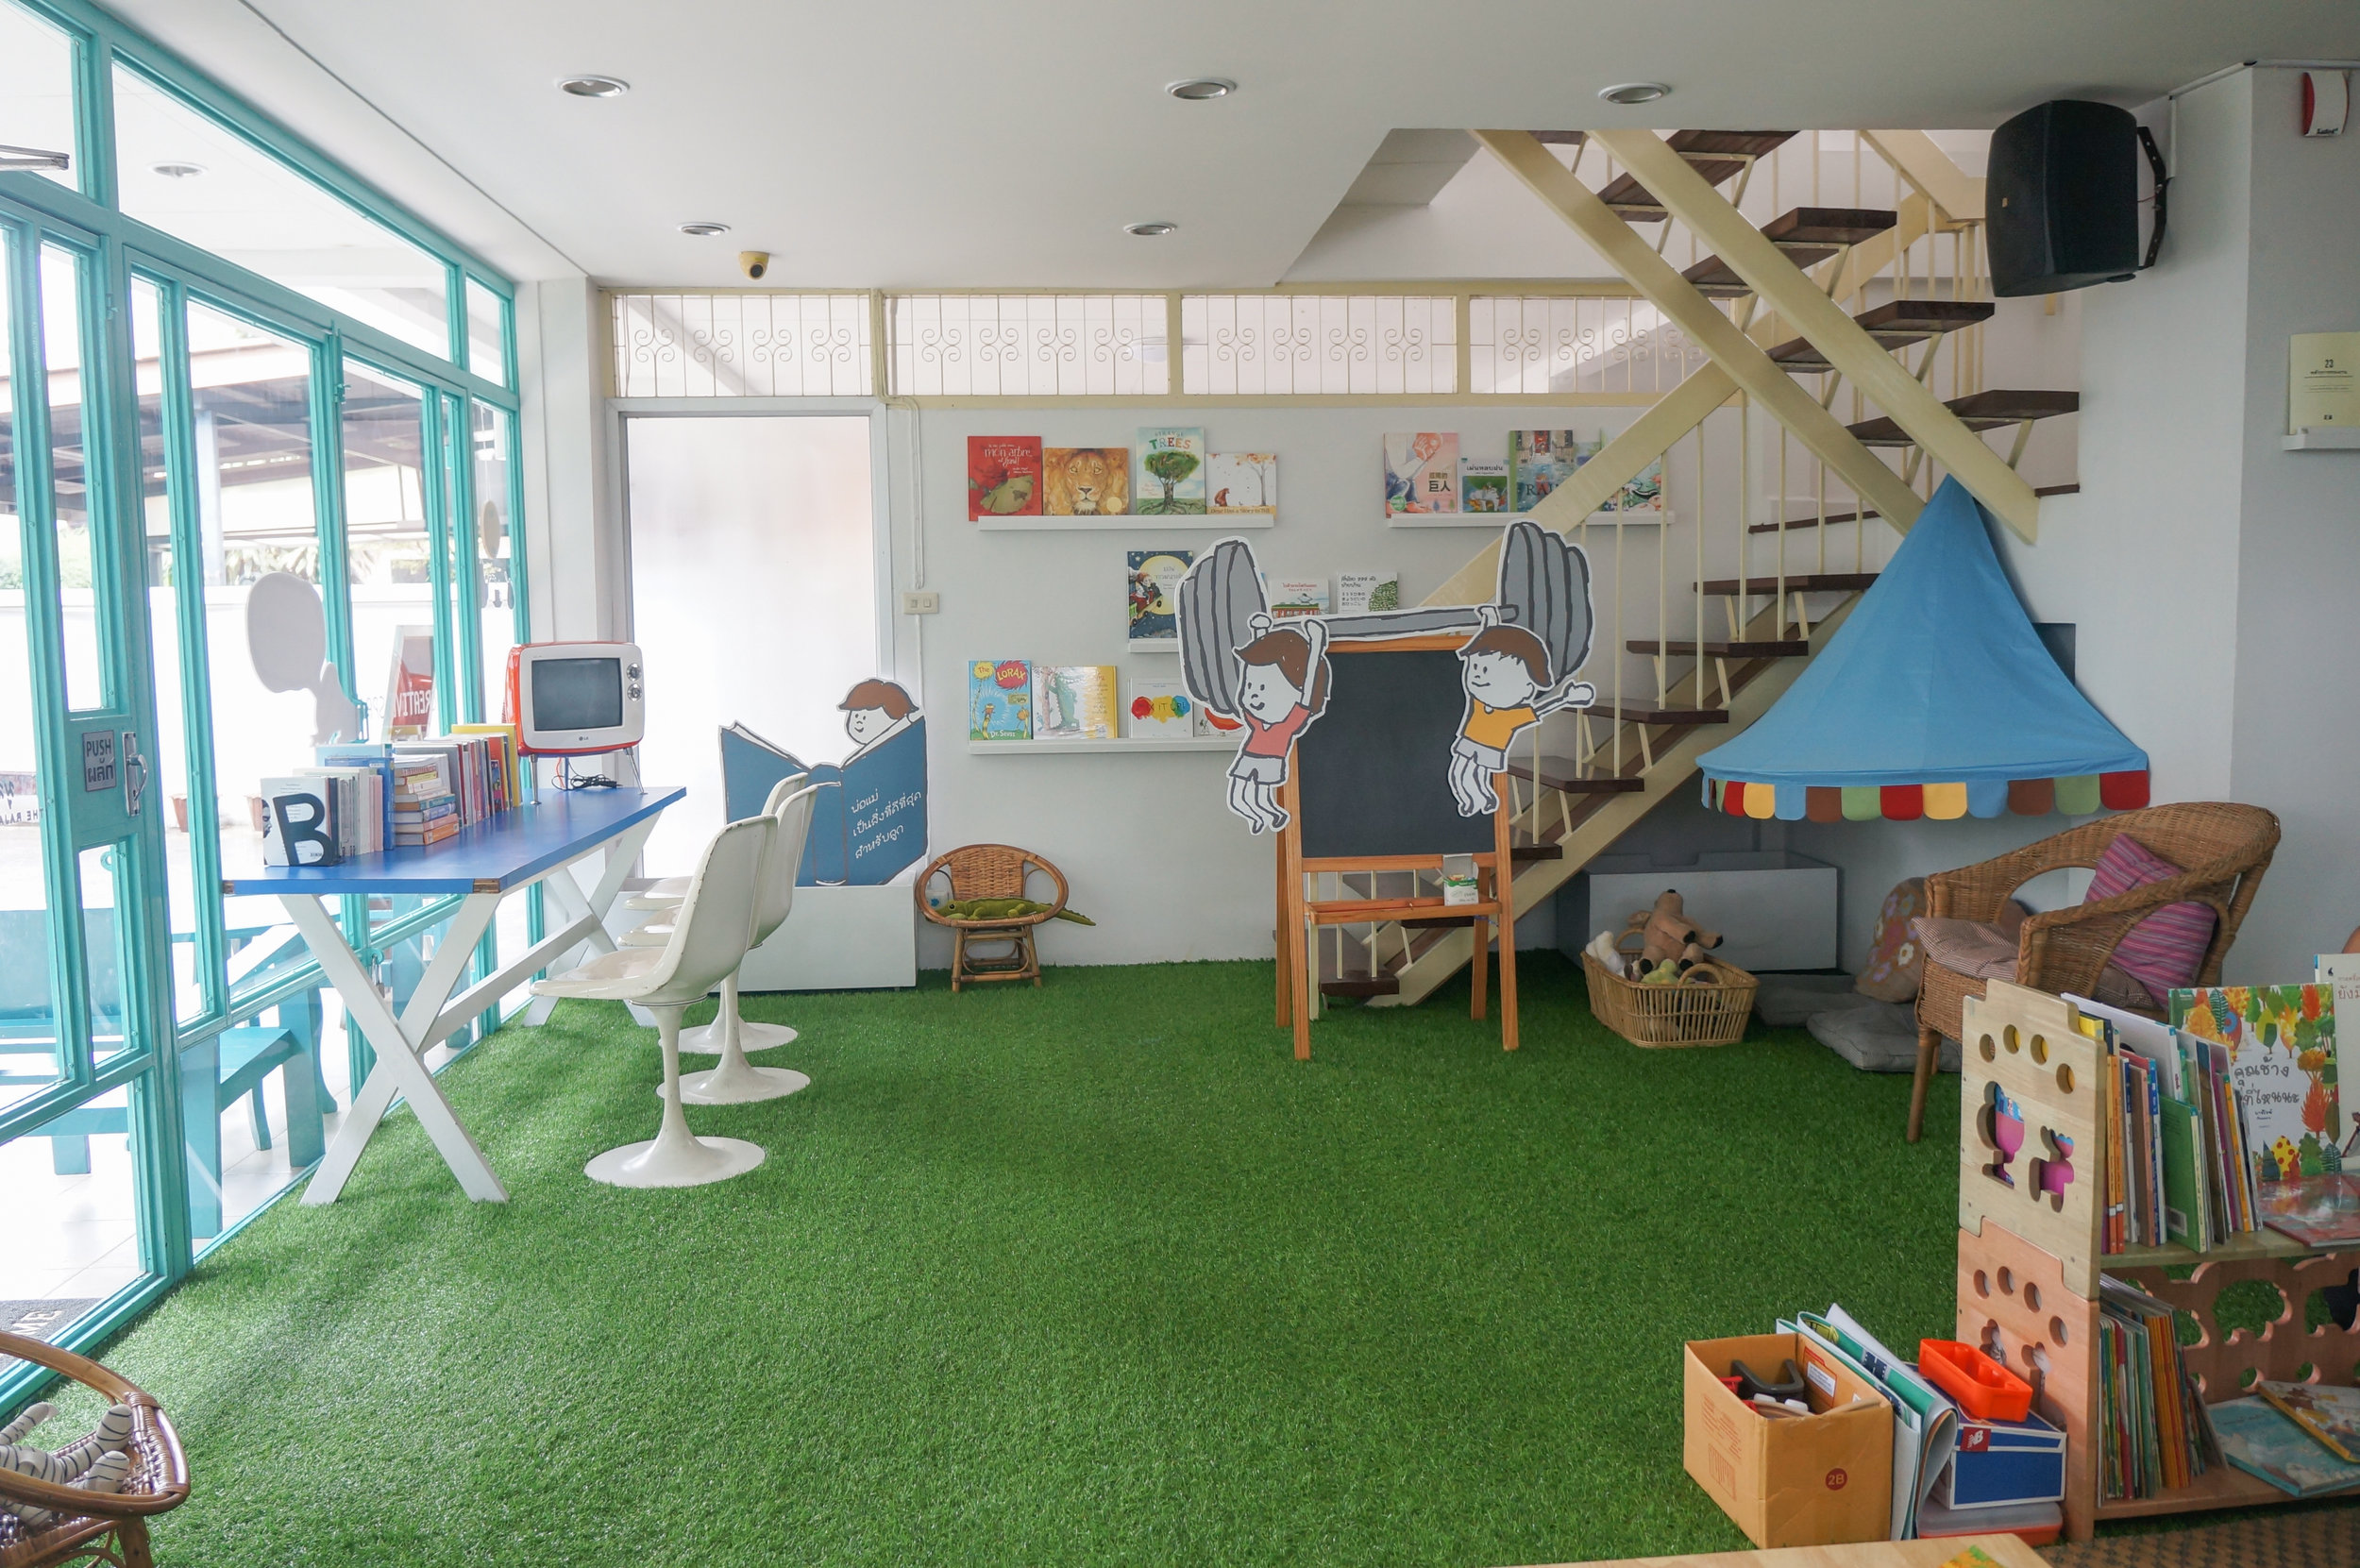 Blue Door Creative Space: The island room for kids